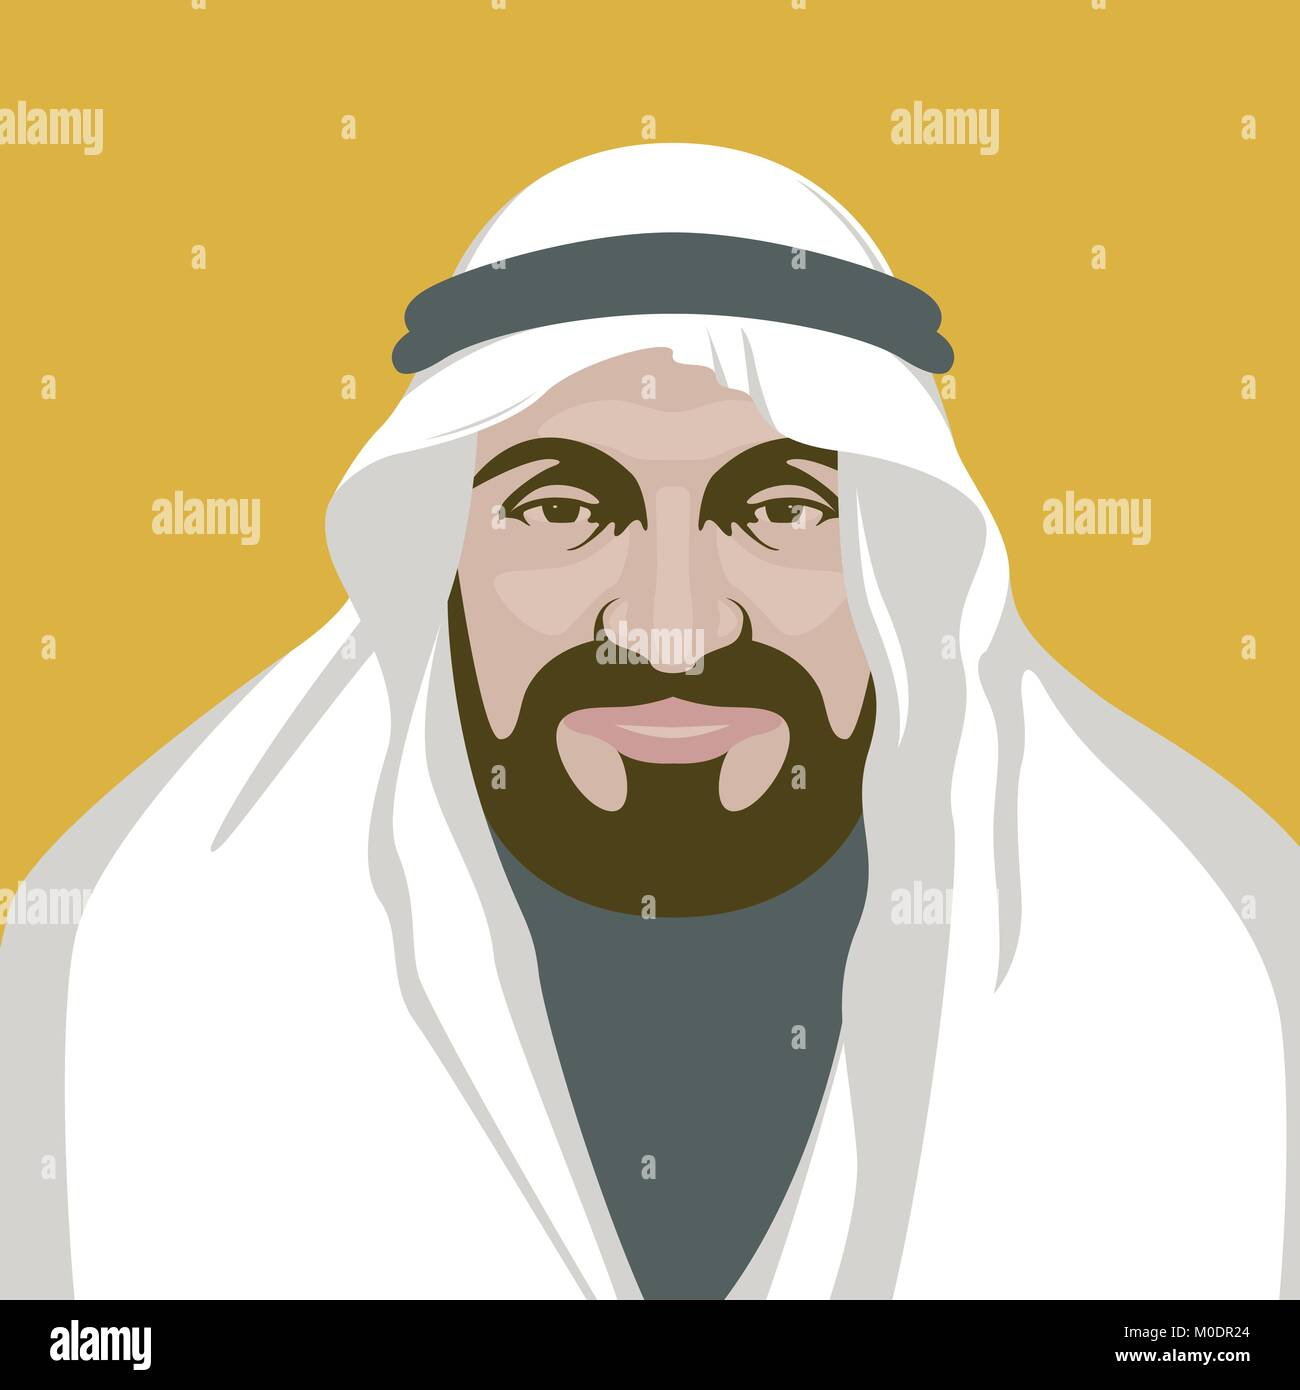 arabian man  face vector illustration flat style front  view - Stock Vector